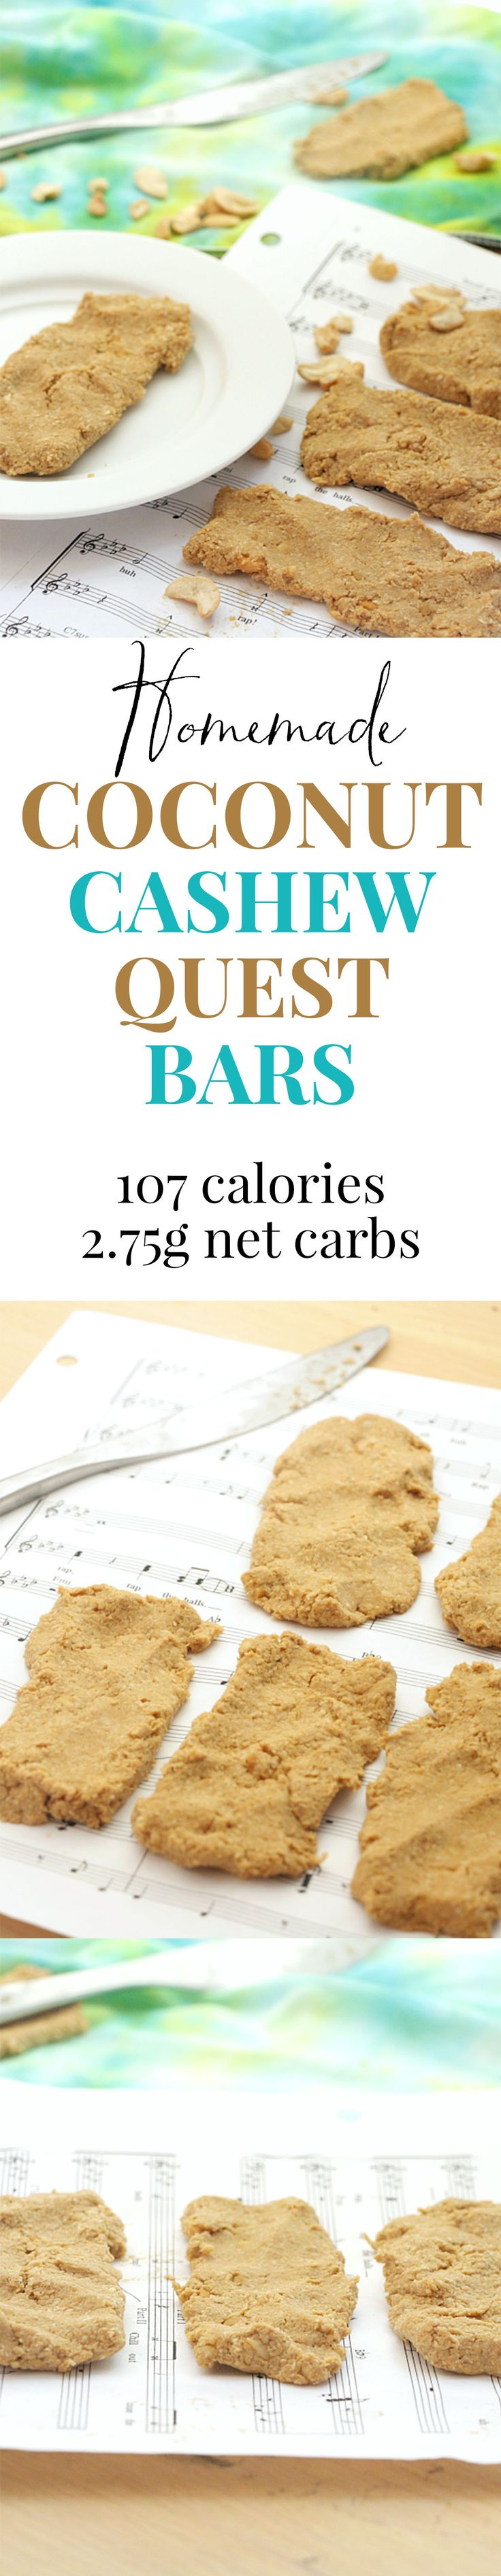 Homemade Coconut Cashew Quest Bars. Packed with protein and only 100 calories each! And they're so much better than the store bought version.